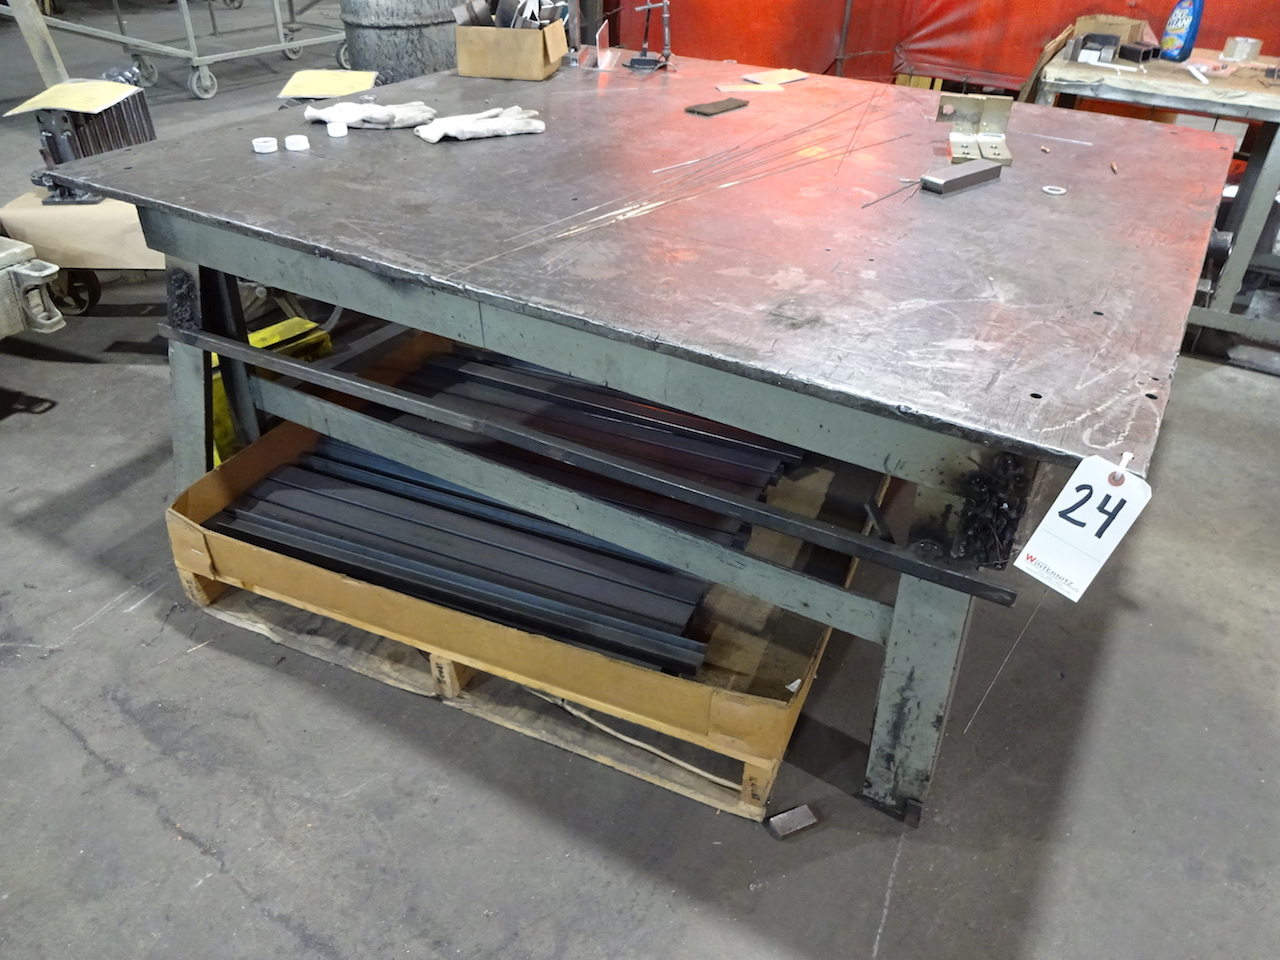 Lot 24 - 68 in. x 62 in. Heavy Duty Steel Welding Table